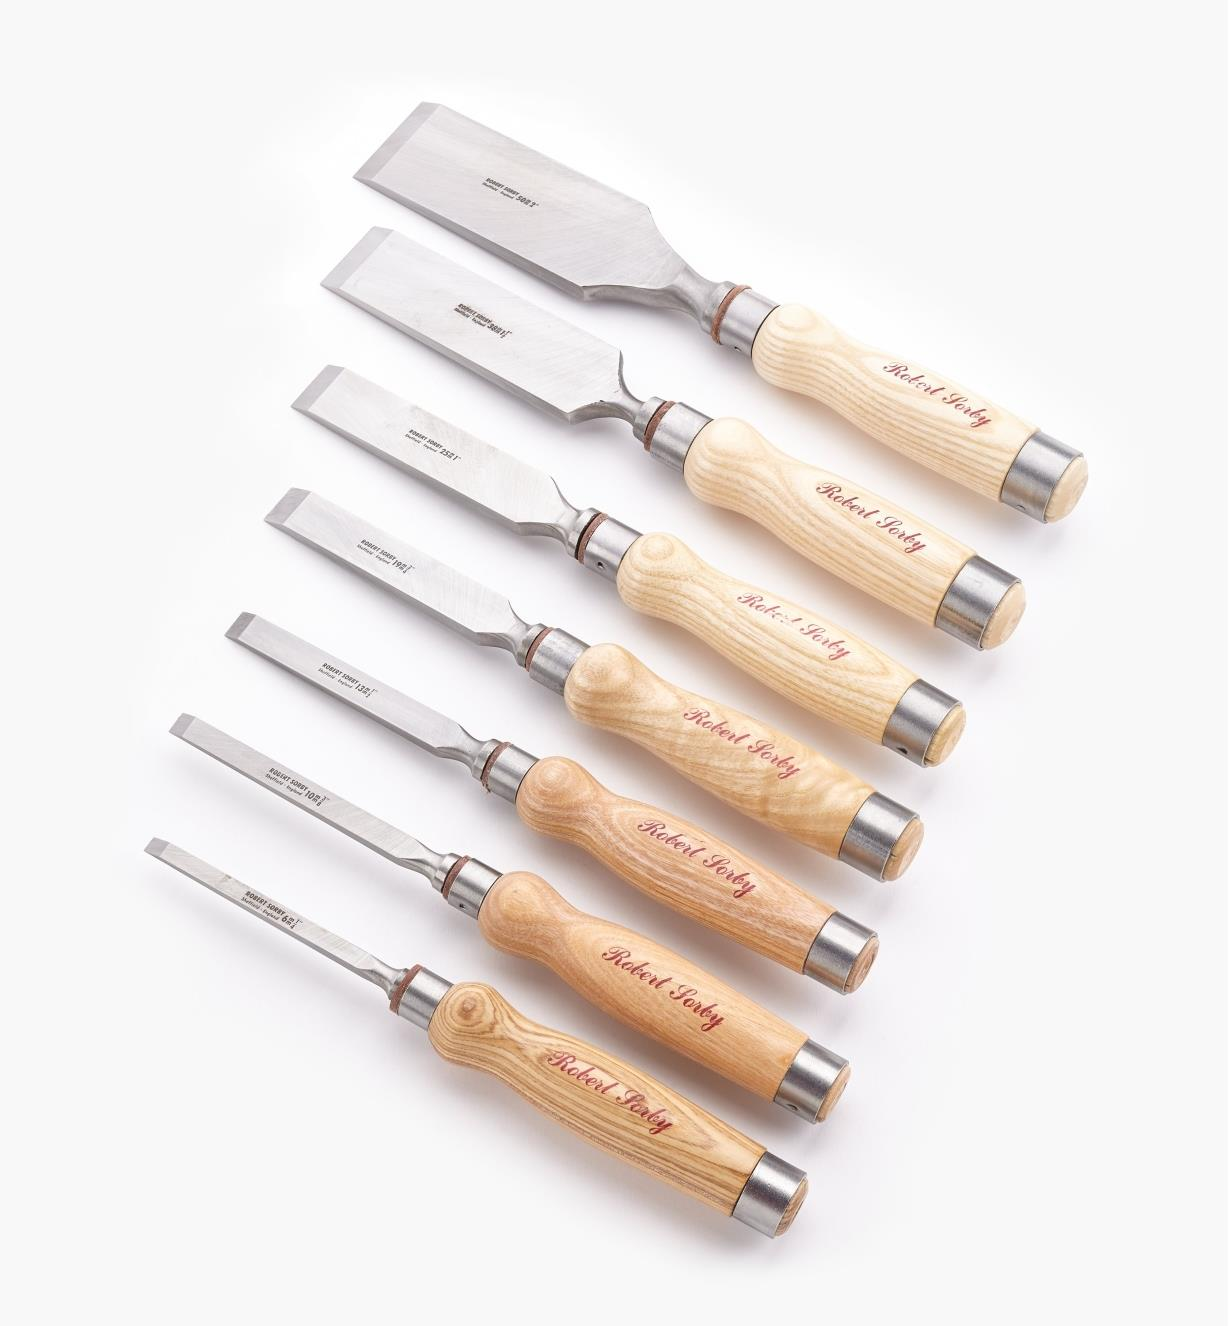 85S0210 - Mortise Chisel Set of 7